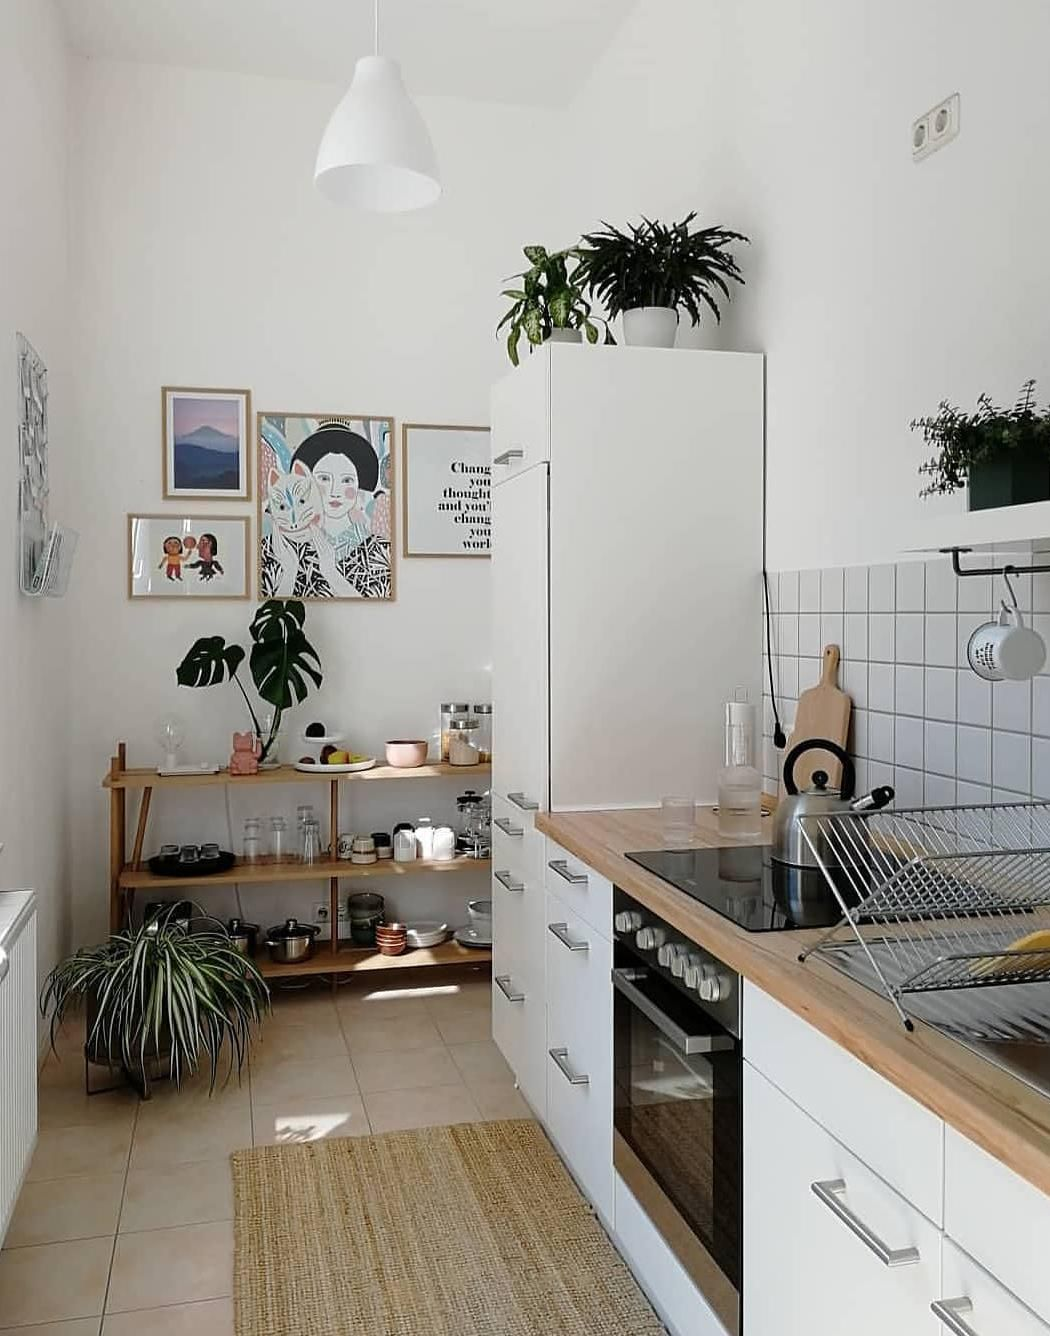 9 Small Kitchen Design Ideas You Will Wish to Copy These trendy ...